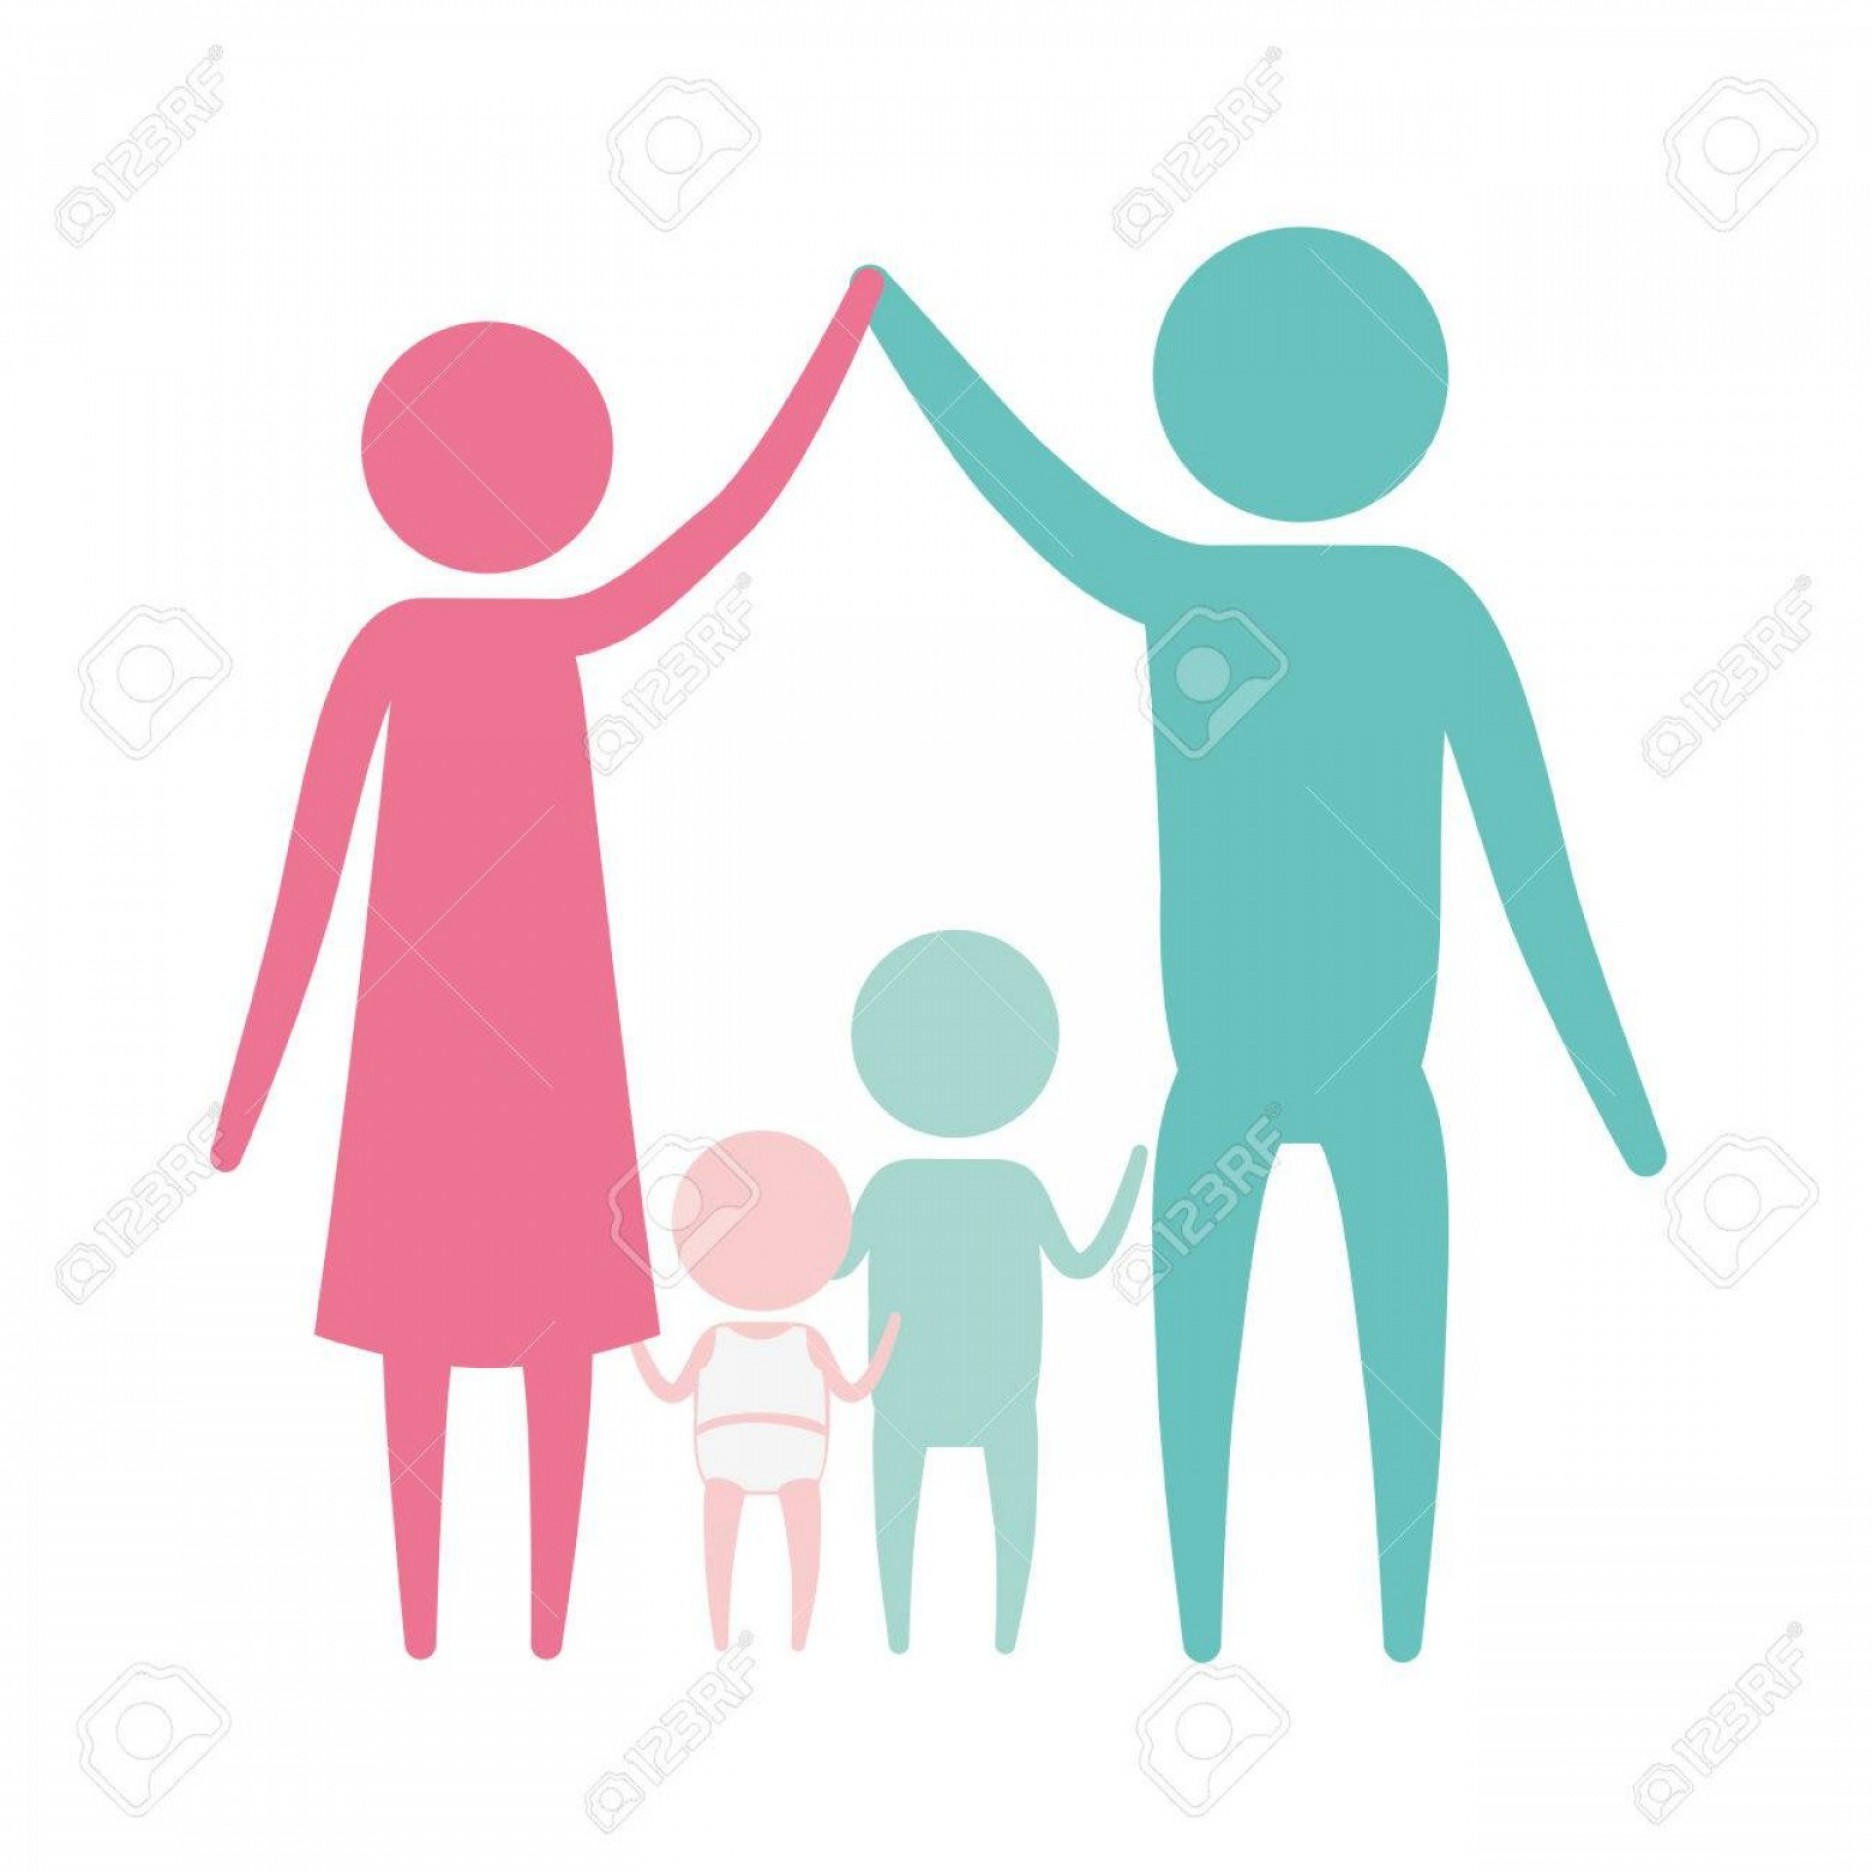 Holding Hands Up Silhouette Vector: Photostock Vector Color Silhouette Set Pictogram Parents Holding Hands Up And Baby Girl And Boy In The Middle Of Them